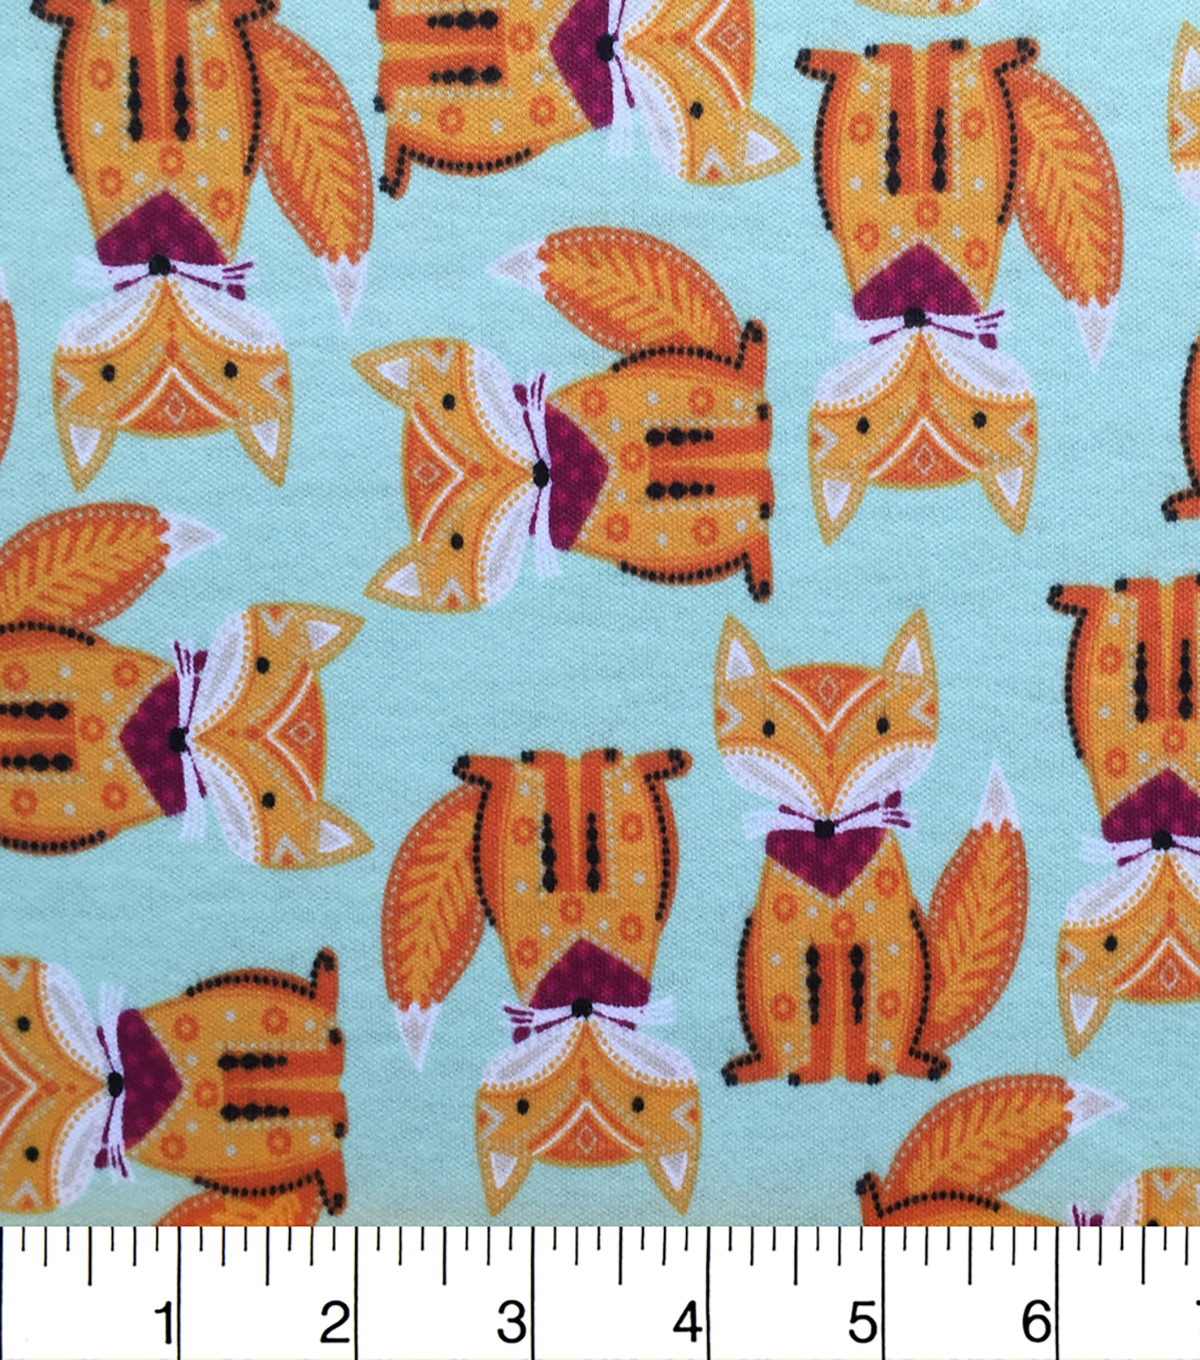 Doodles Juvenile Apparel Fabric-Foxes Interlock